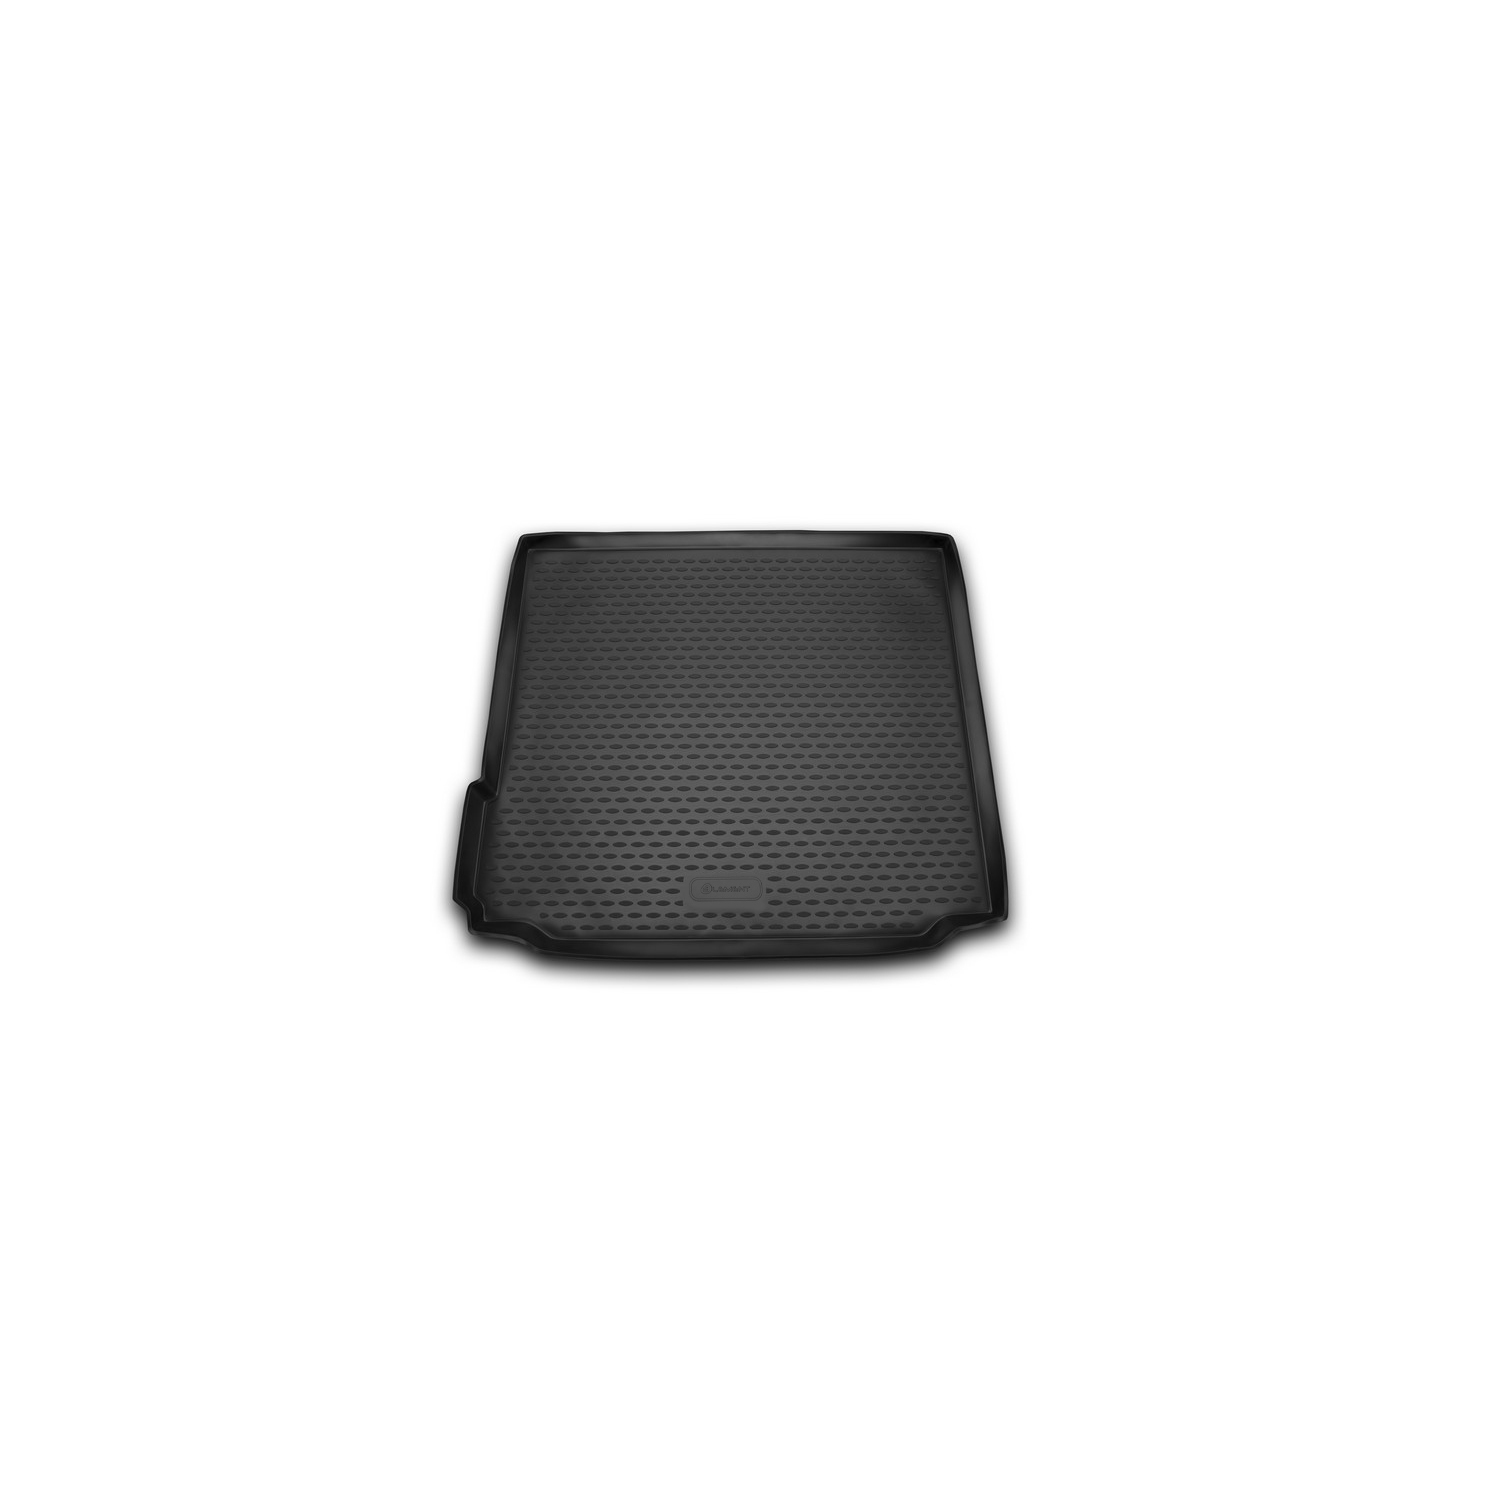 Trunk Mat For Fit For BMW X5 F15, 2013-2017, Implement,. NLC.05.38.B13